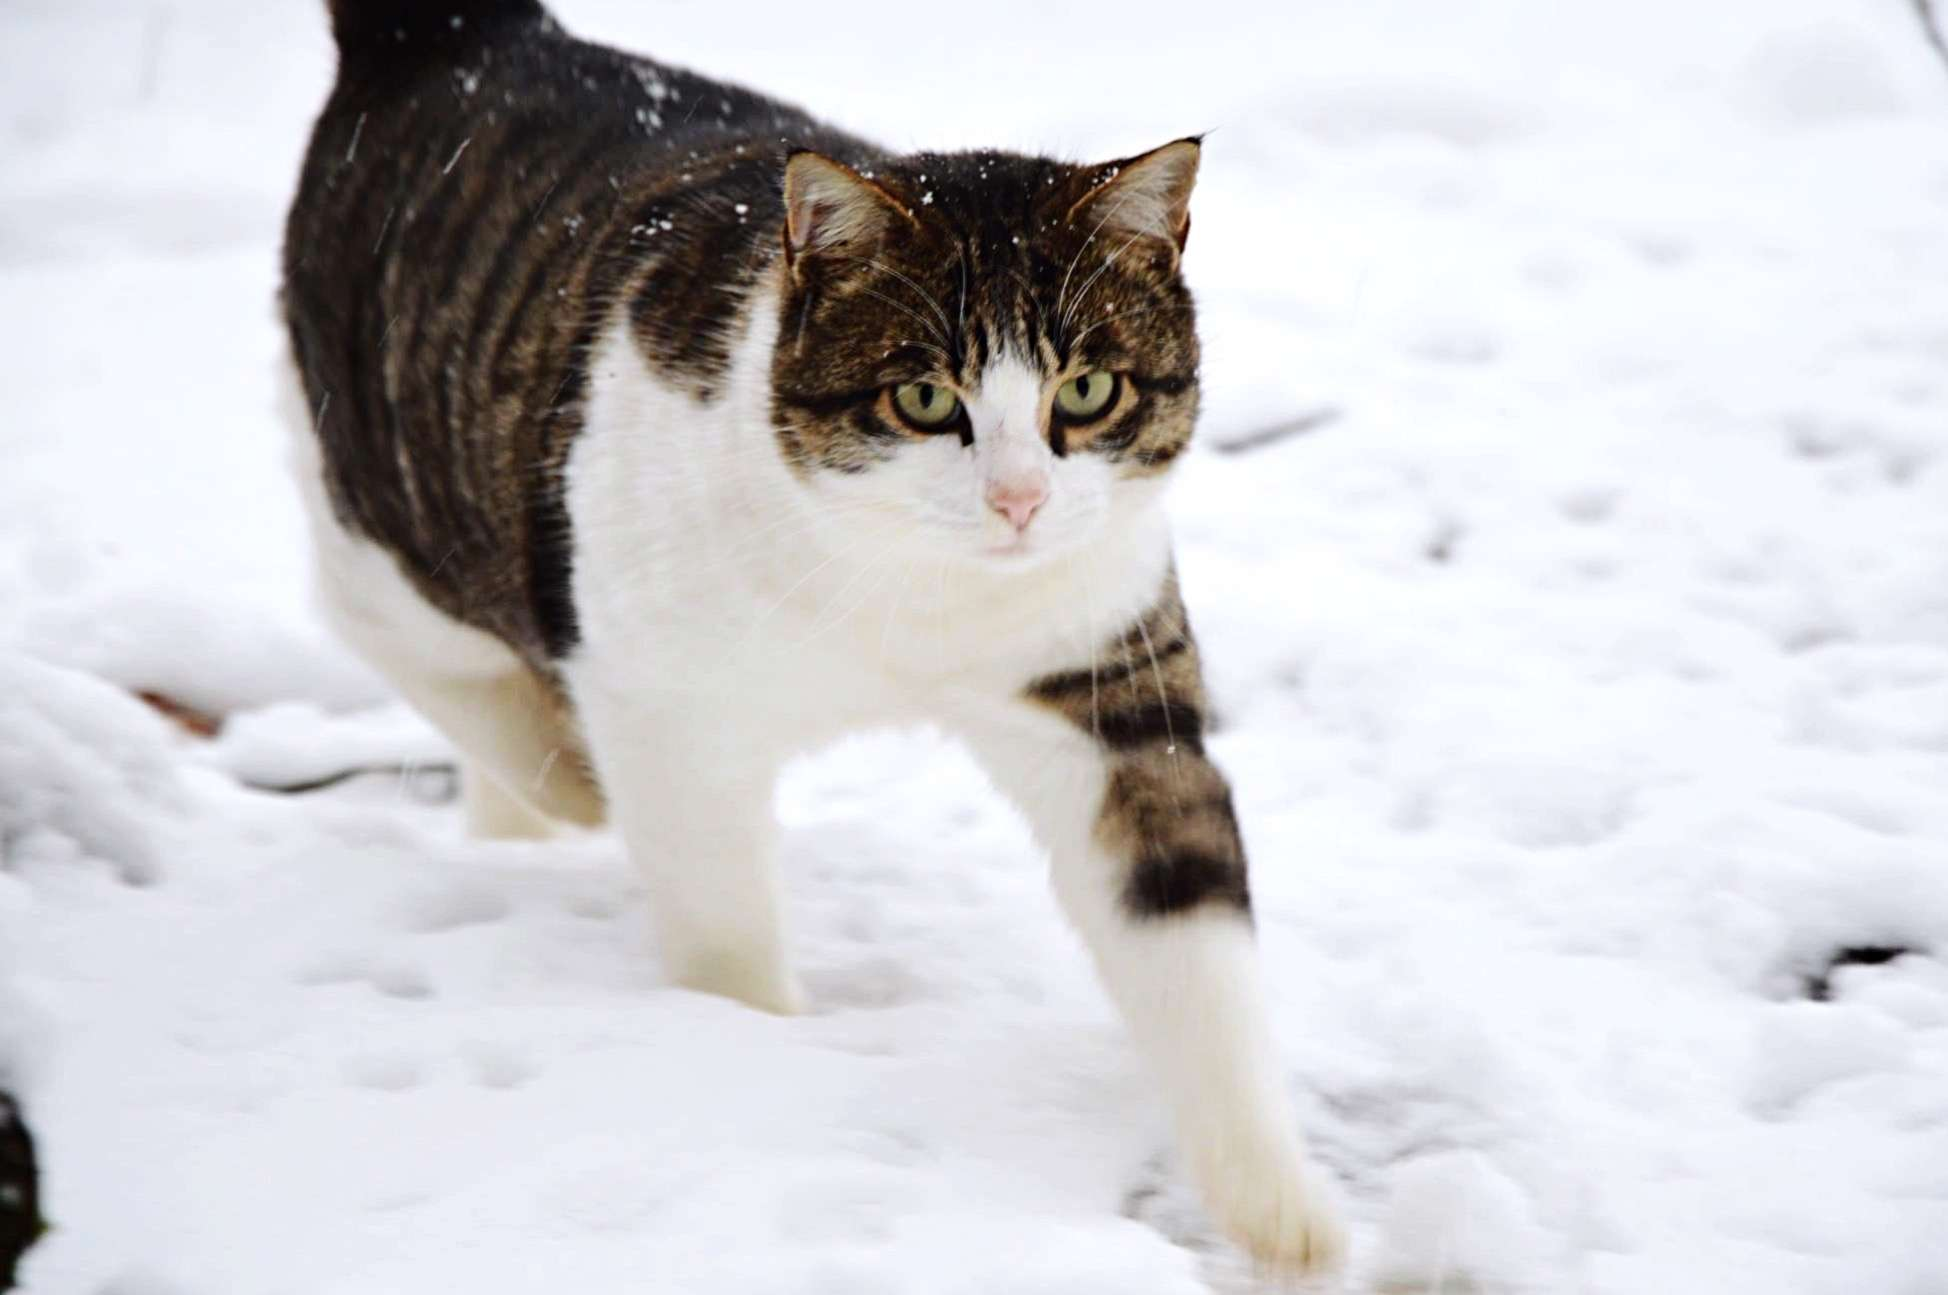 Portrait Of Cat Walking On Snow Covered Field